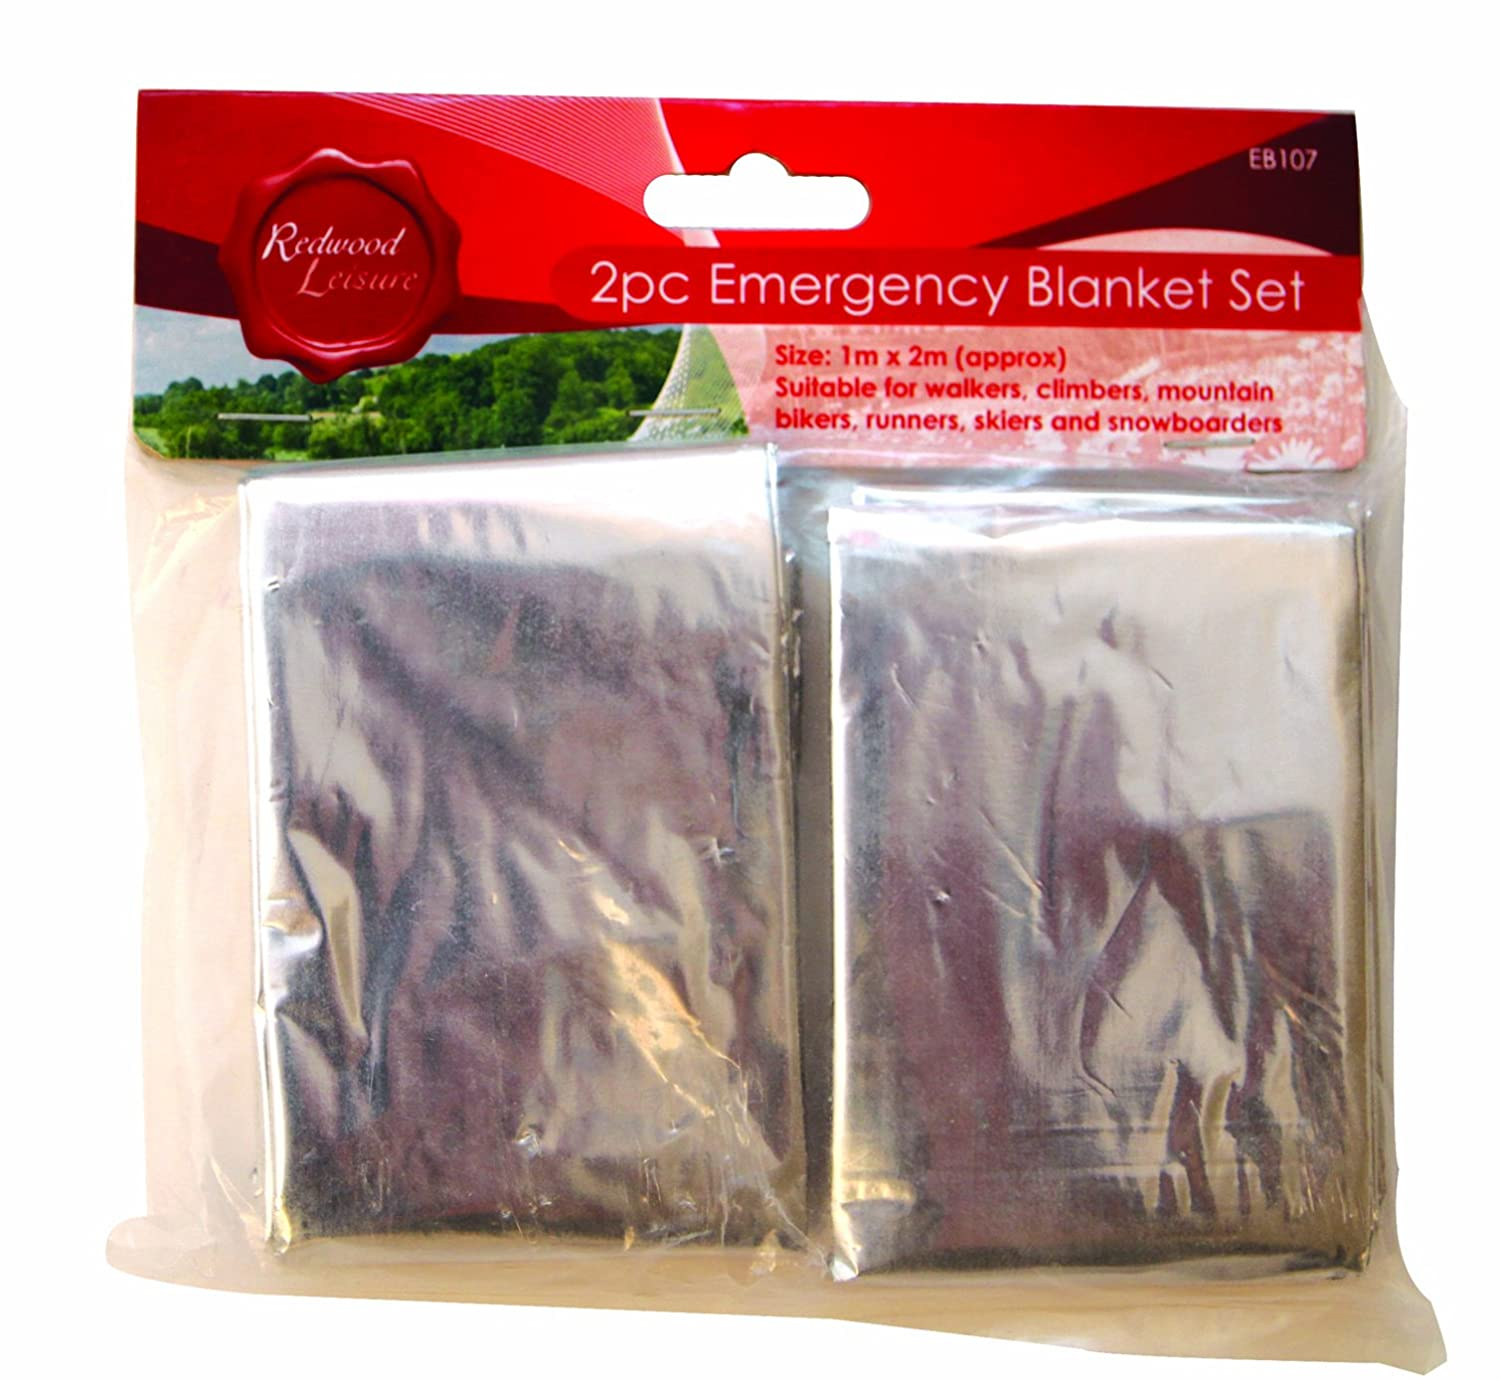 2 Pack Emergency Blanket Set, Ideal For Walkers, Climbers, Runners, Skiers Redwood Leisure